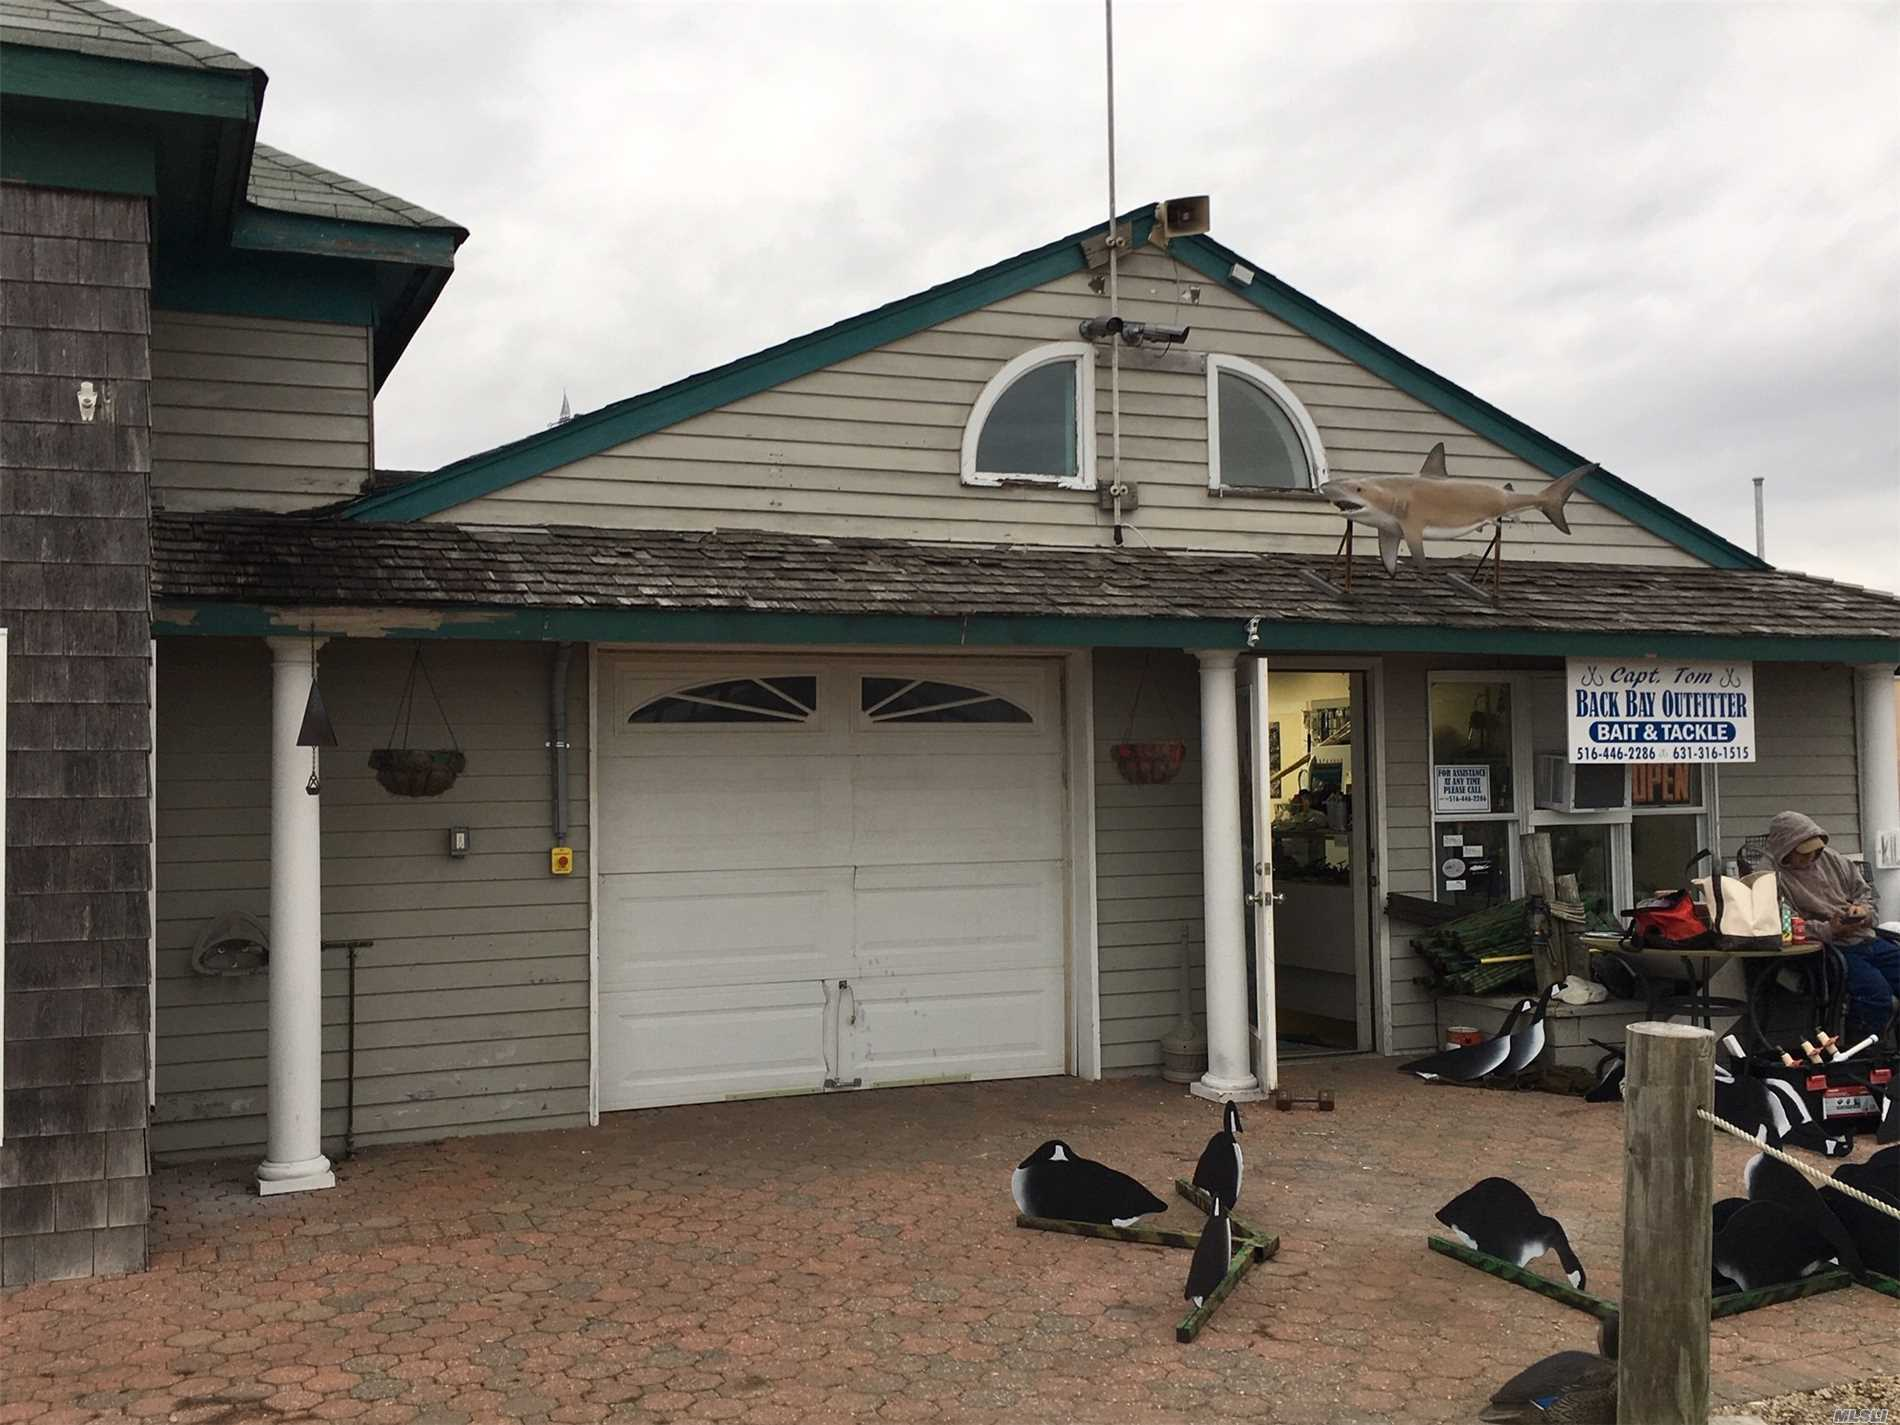 Garage/Workshop/Showroom/Retail Space Directly On Waterfront. Ideal For Any Marine Use. Eg Boat Dealer. 12' Wide X 28' Deep With Drive In Door. Can Also Be Combined With The Storefront Space Next Door `17'Frontage X 28Ft Deep With Connecting Doorway.